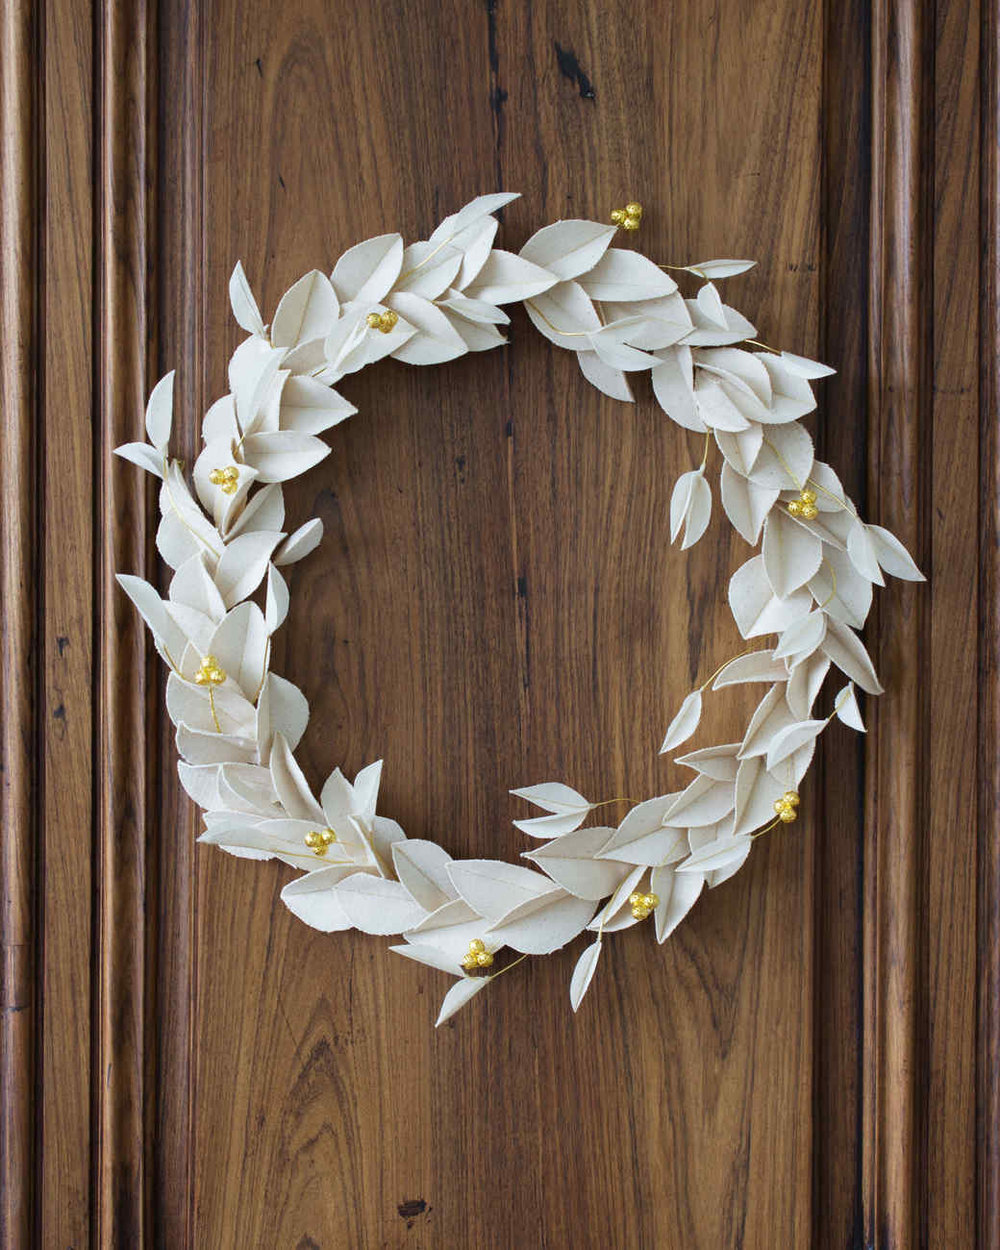 david-stark-canvas-wreath-final-1-1217_vert_0.jpg